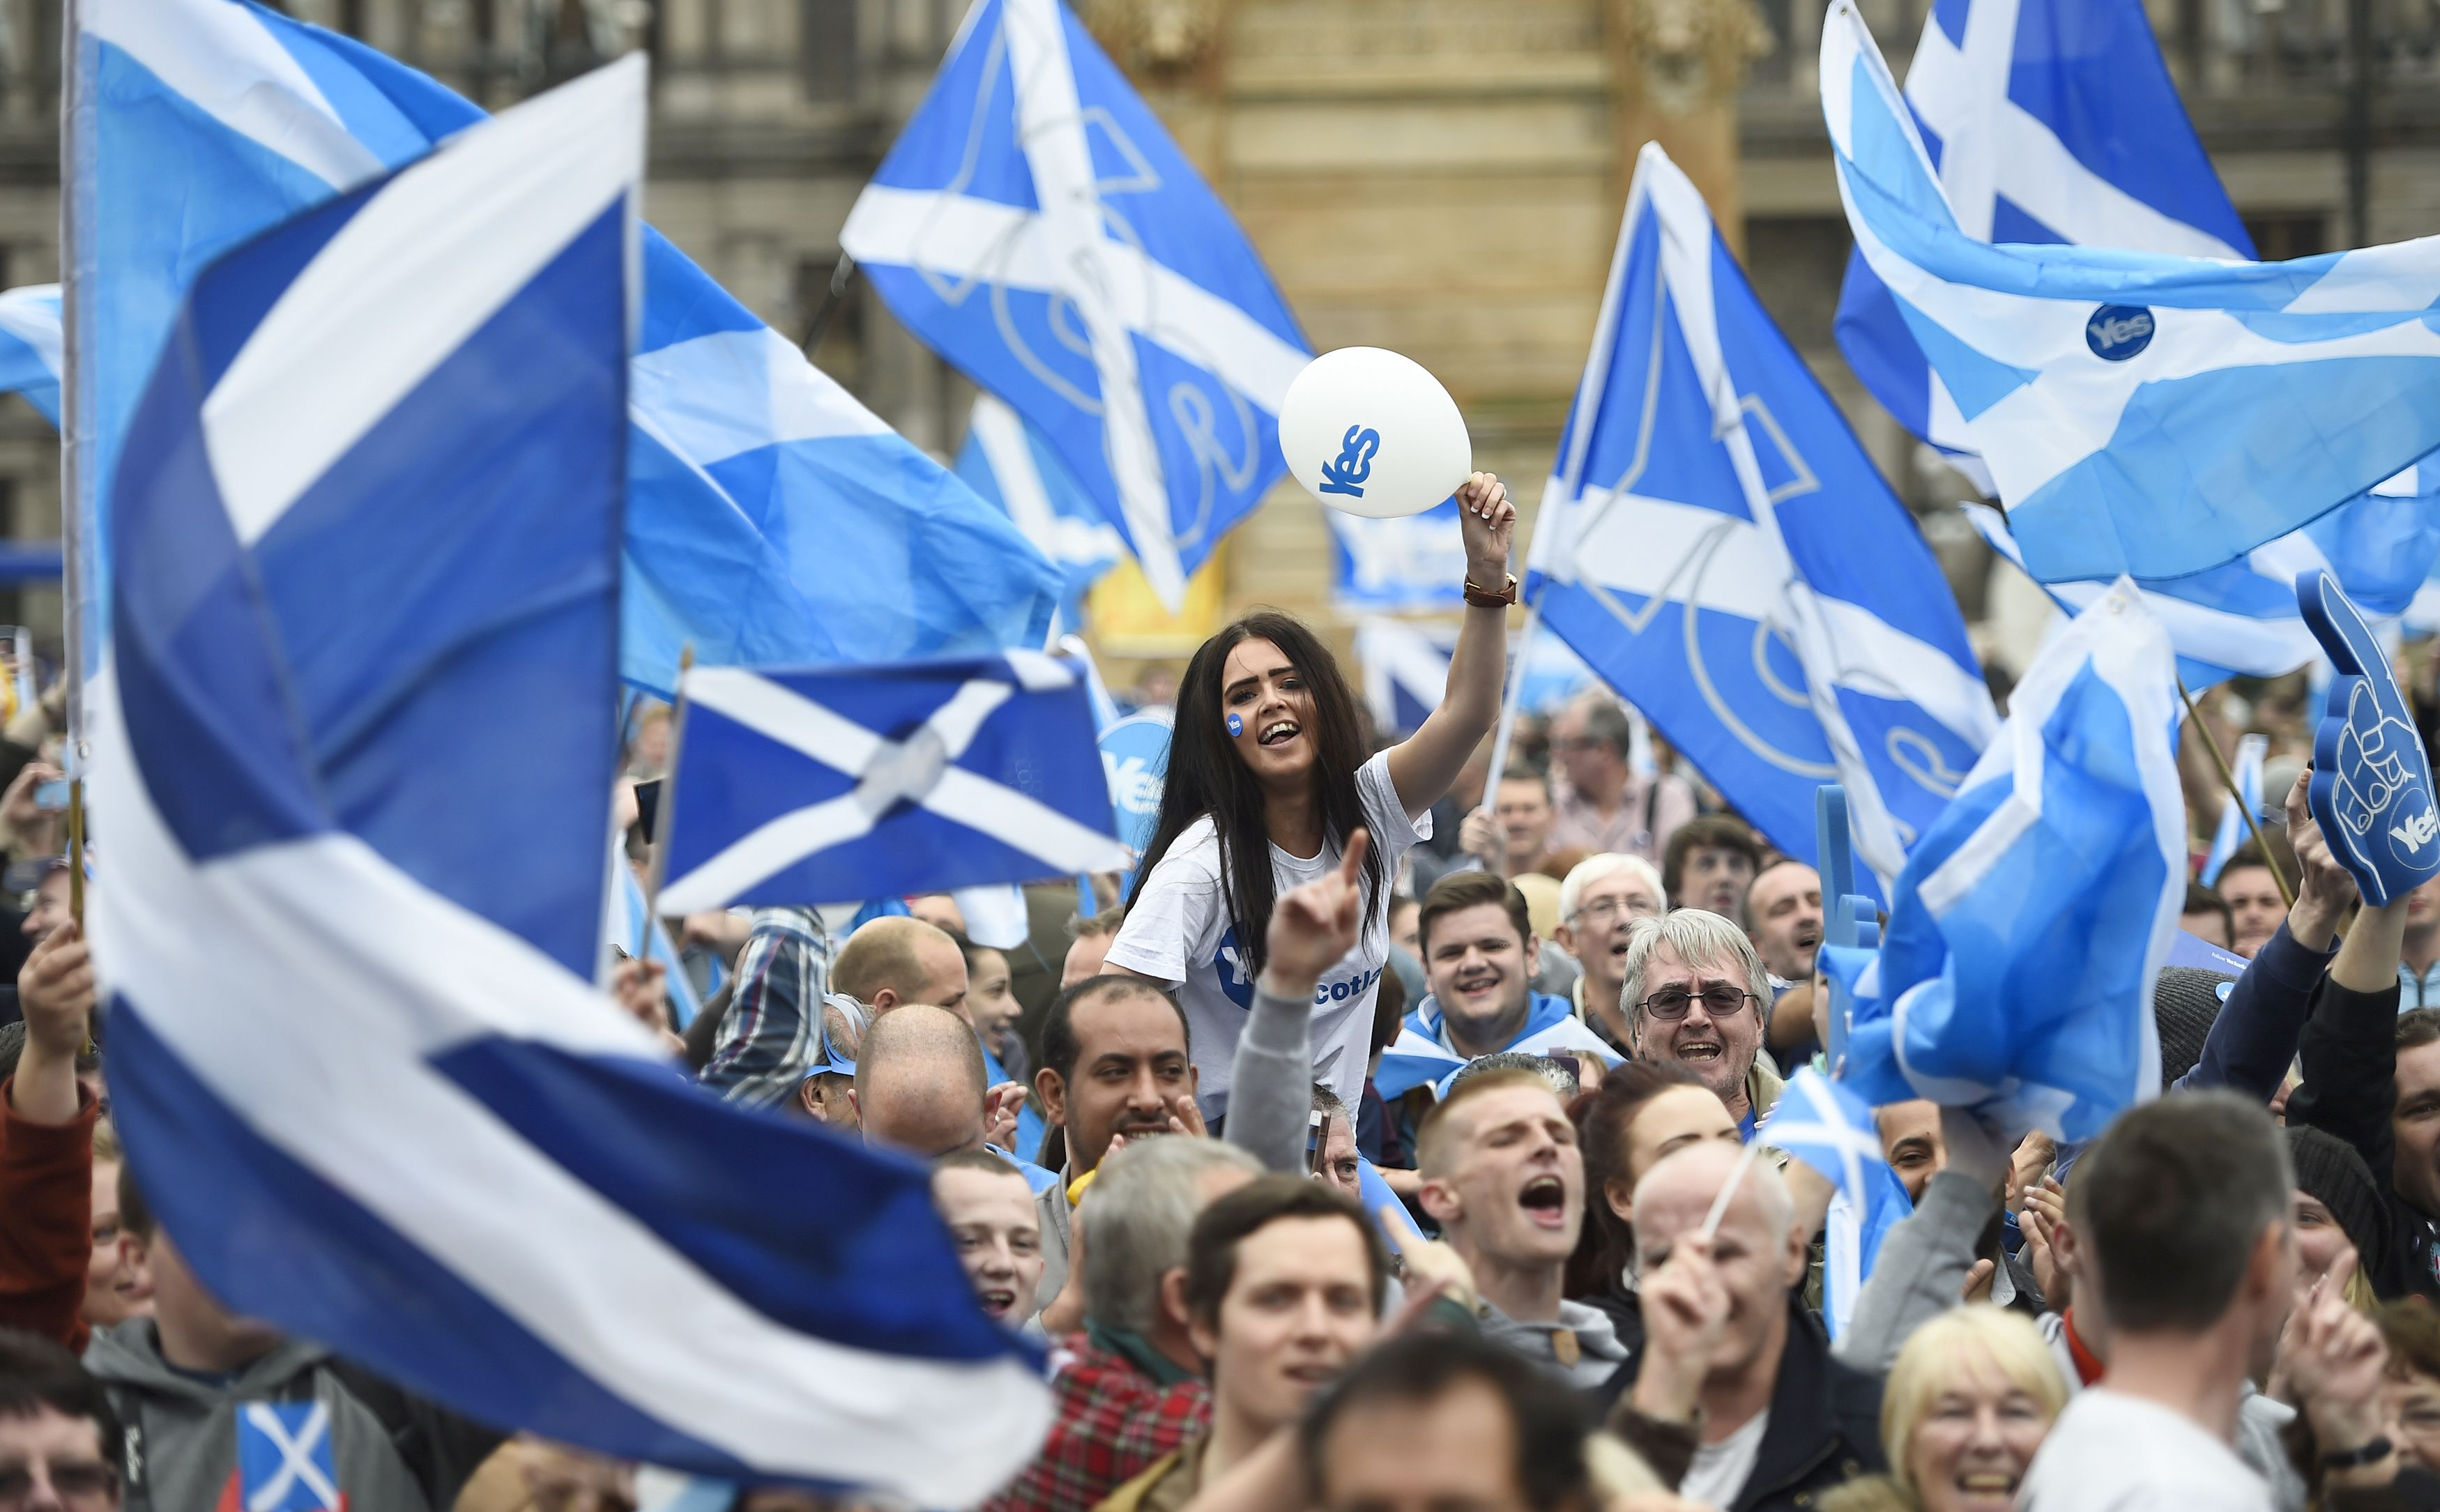 Young people were at the forefront in Scotland's referendum.